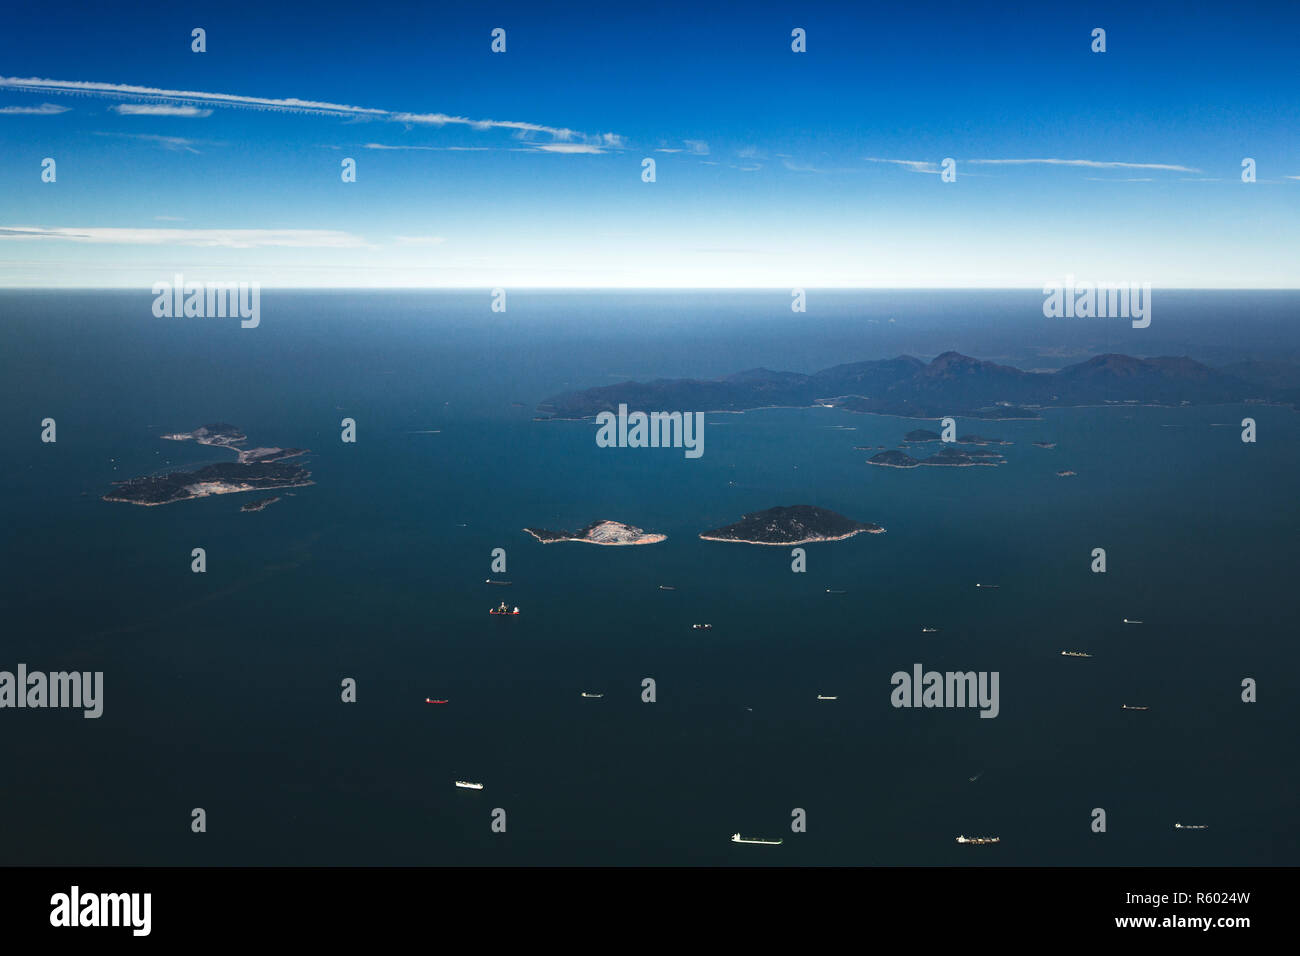 Aerial shot of the Soko Islands. A group of islands in Hong Kong to the southwest of Lantau Island in the South China Sea. - Stock Image